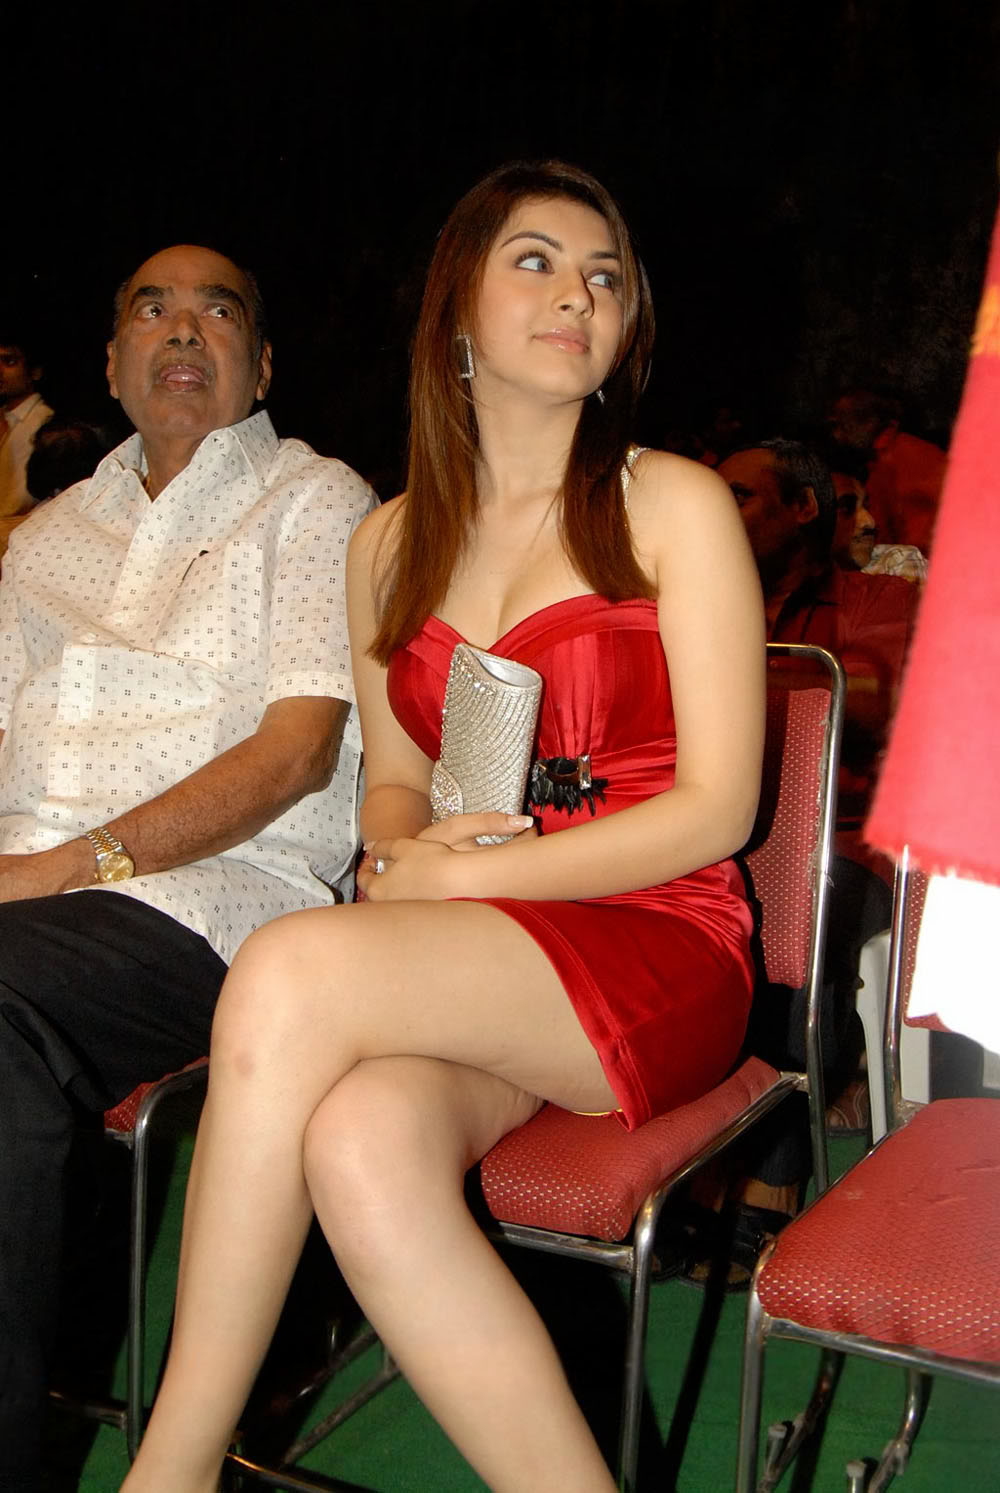 hot bollywood  masala actress hanshika exposing thunder thighs in red hot chilli dress